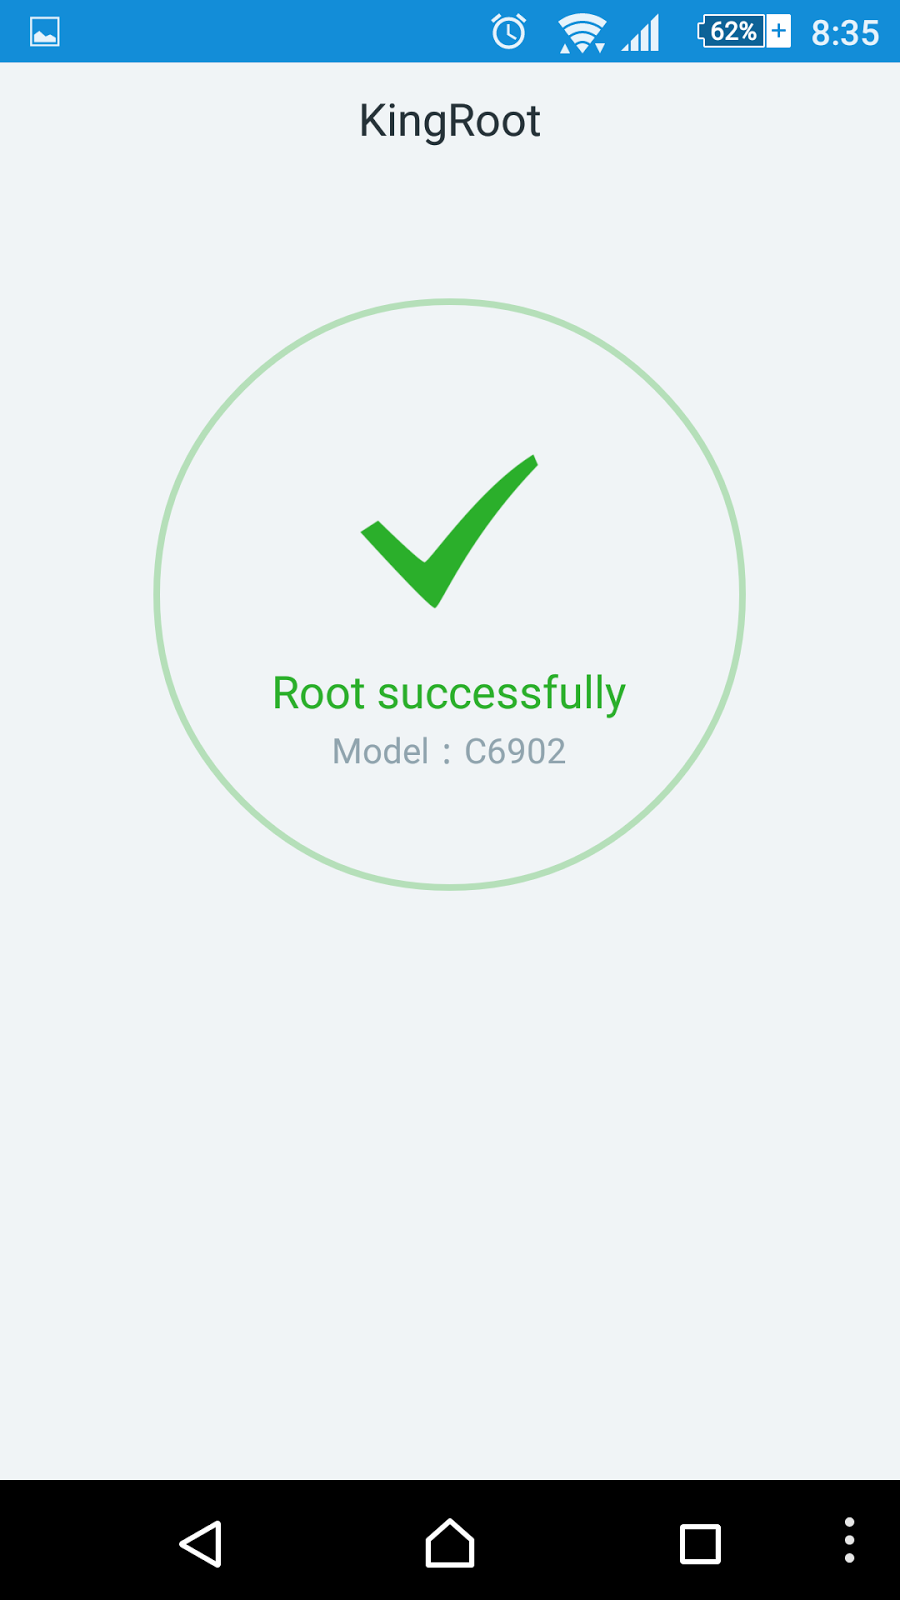 How to Root Sony Xperia Z1 running Android Lollipop 5.1.1 Build 14.6.A.1.216 / 14.6.A.0.368 ( C6902 / C6903 / C6906 / C6943 ) -